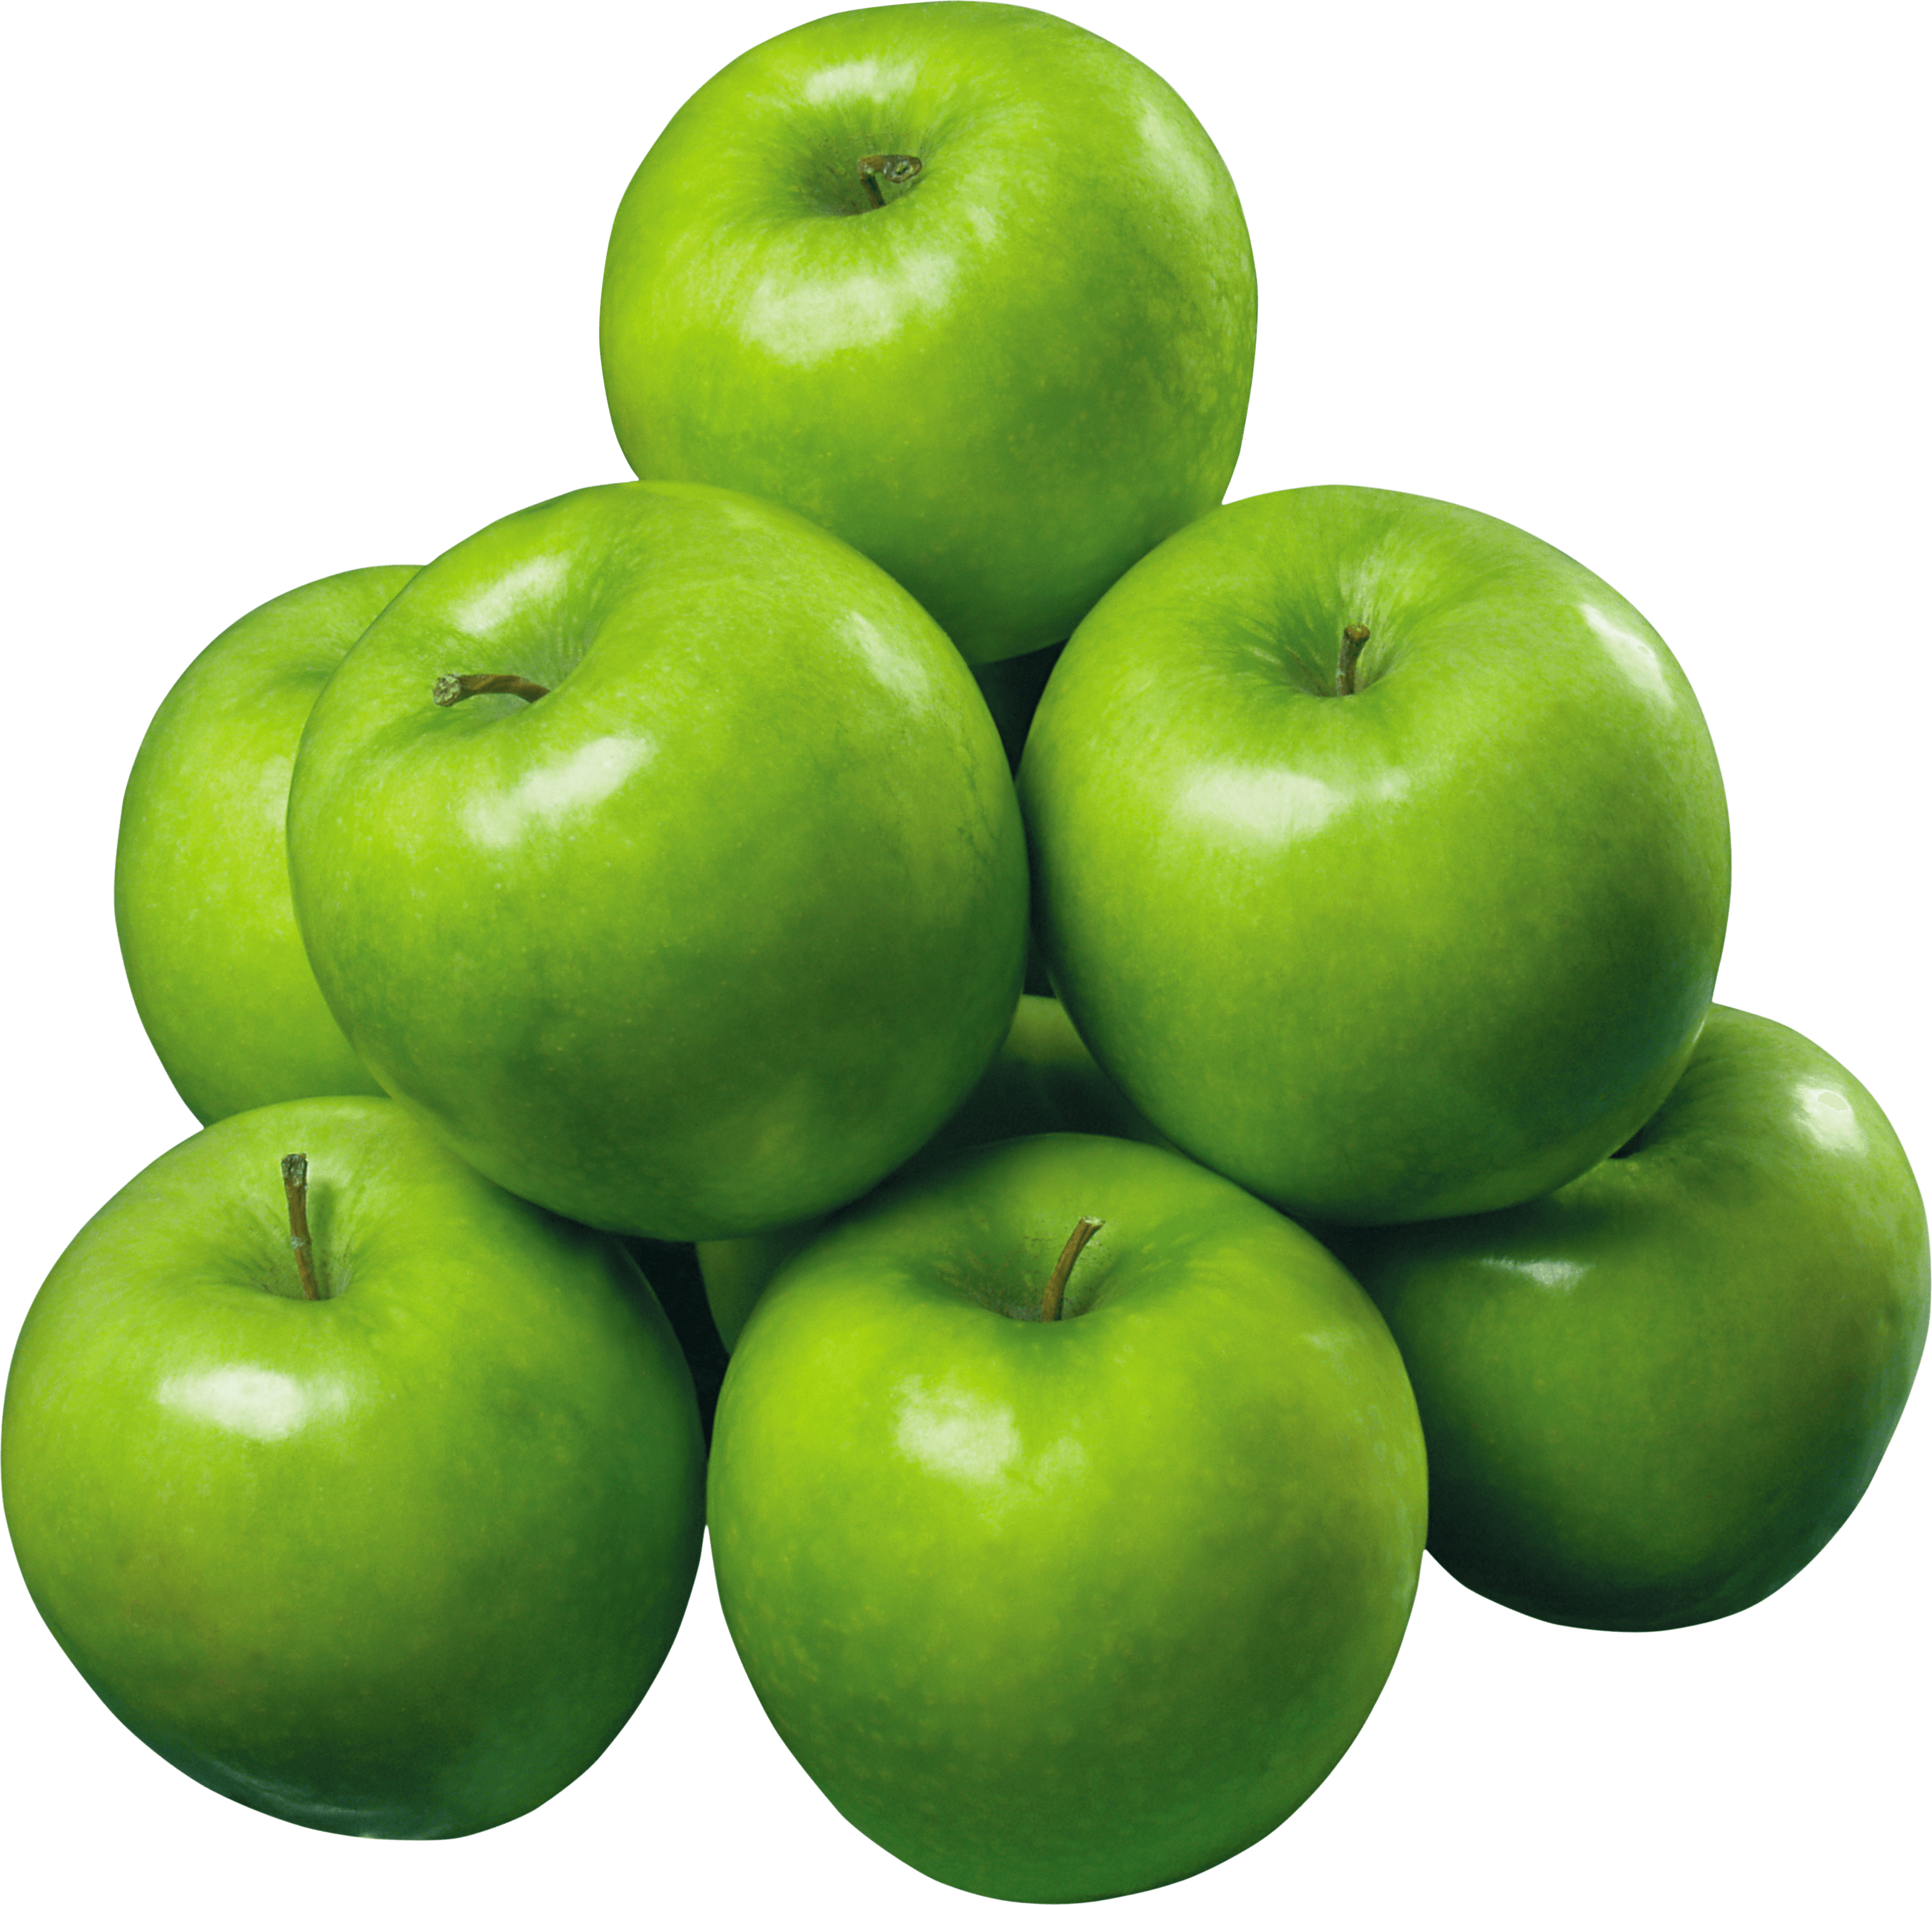 Transparent apples clipart - Apple Fruit Clipart Pile Apple - Bunch Of Green Apples